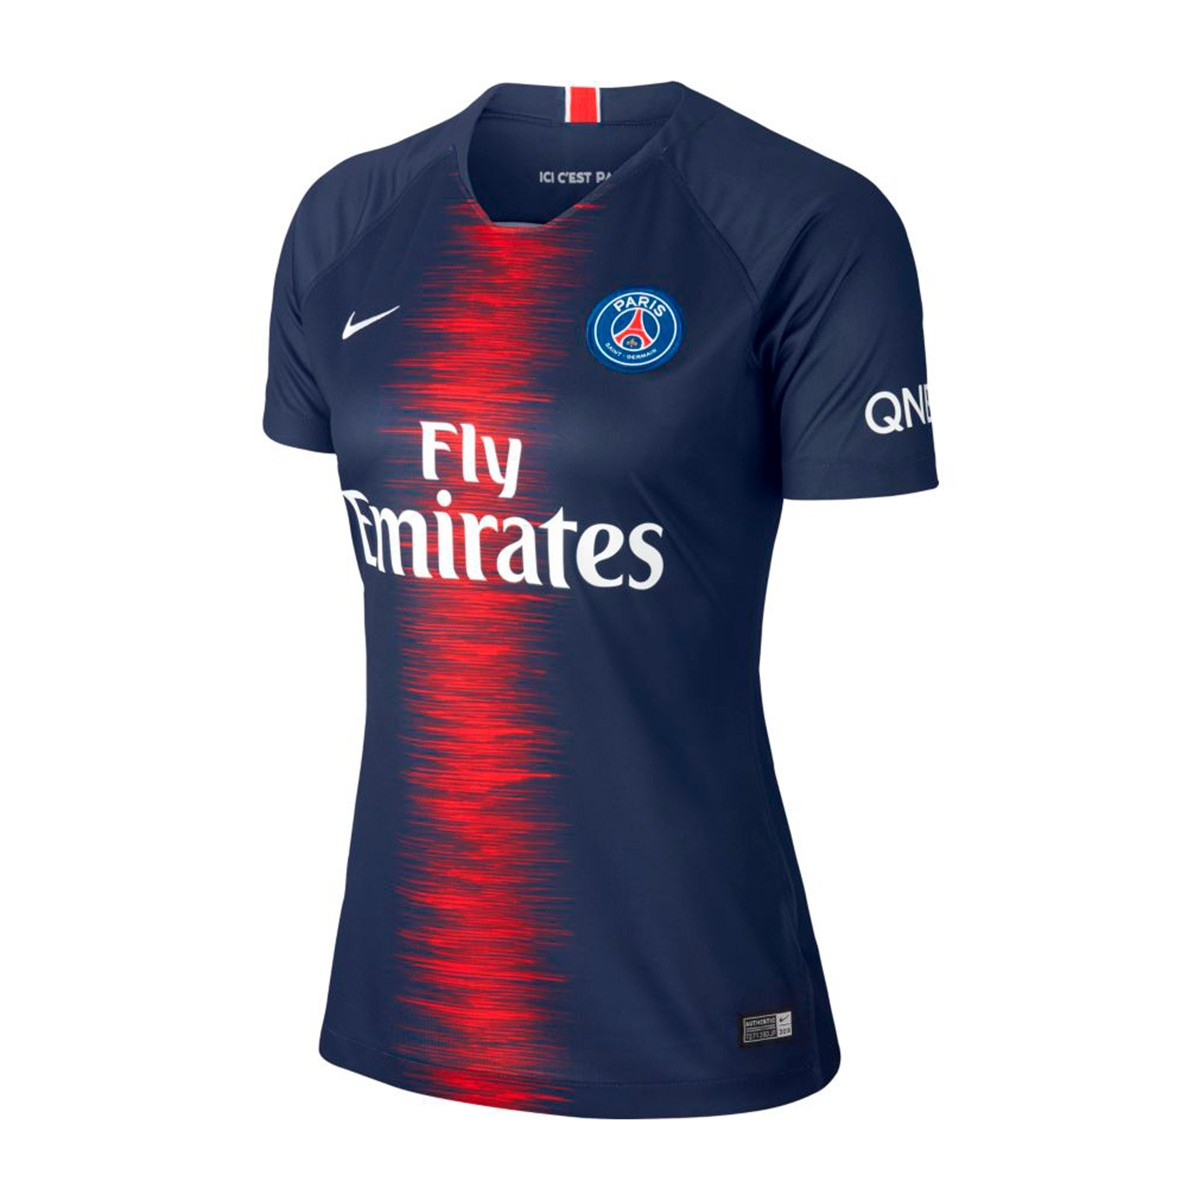 0f5b9cbbc Jersey Nike Kids Paris Saint-Germain Stadium 2018-2019 Home Midnight navy- White - Football store Fútbol Emotion